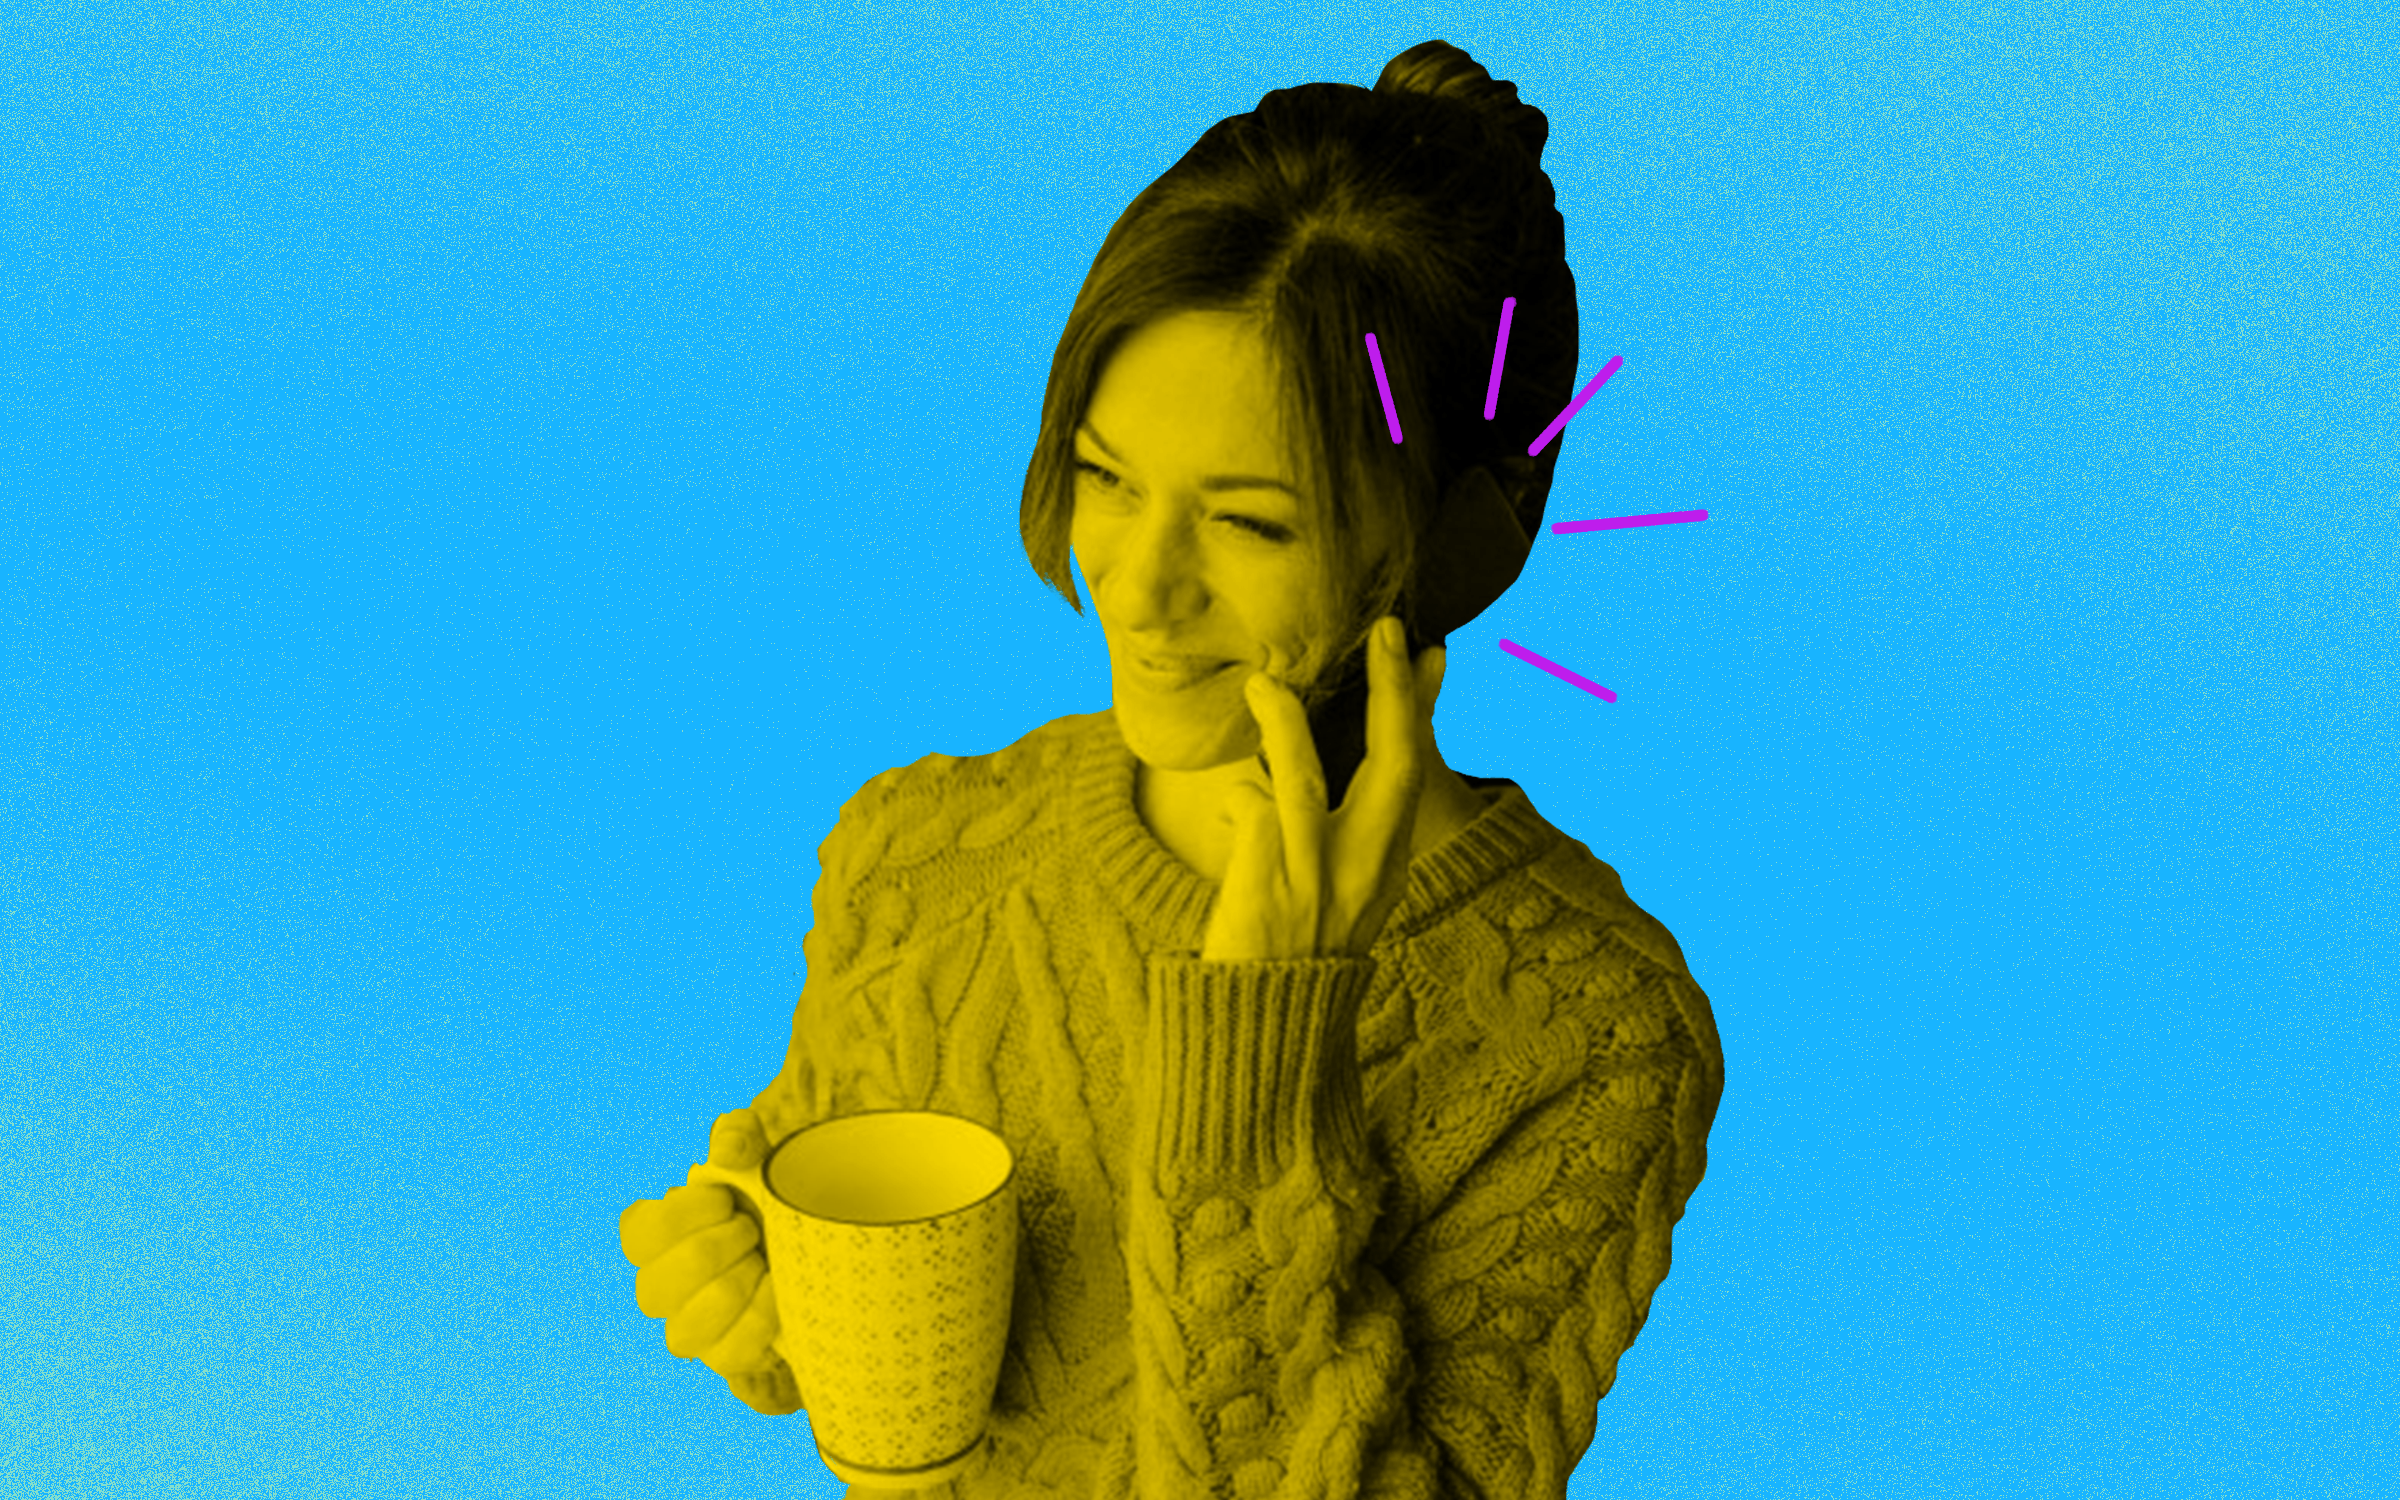 A photo illustration of a smiling woman on a phone call while holding a cup.